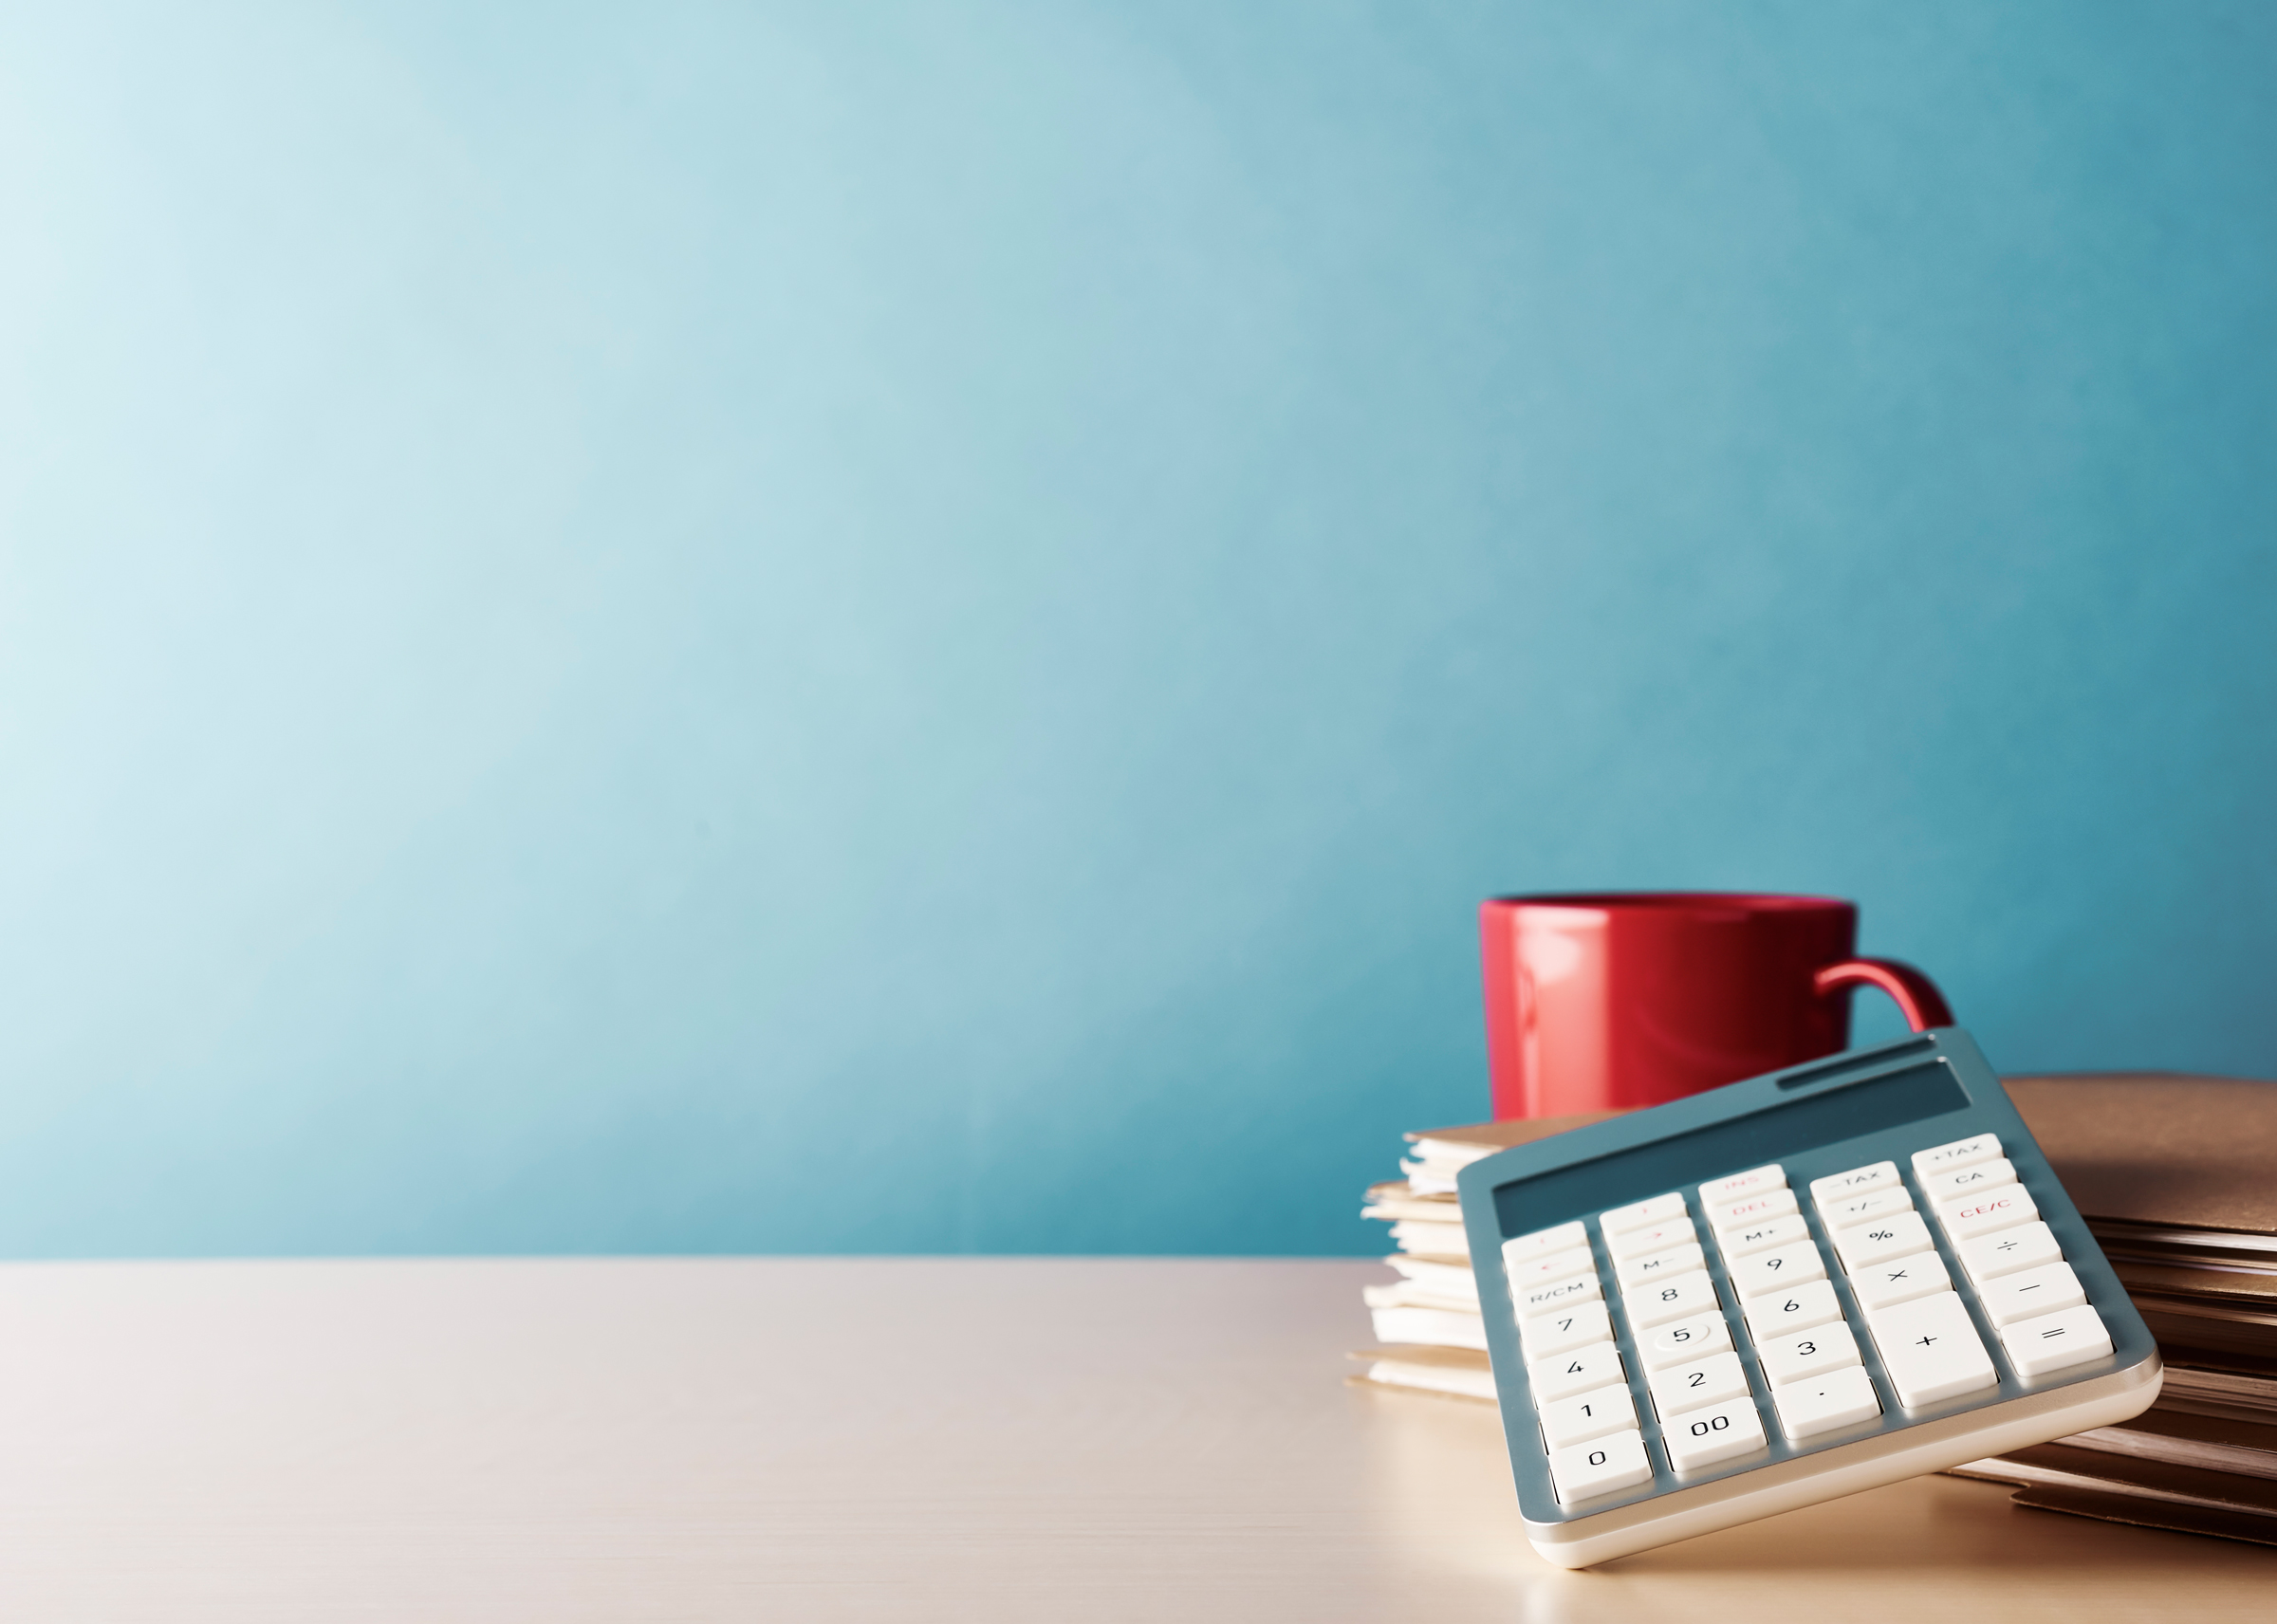 Special Update: Additional Guidance Issued on Tax Filing Deadlines